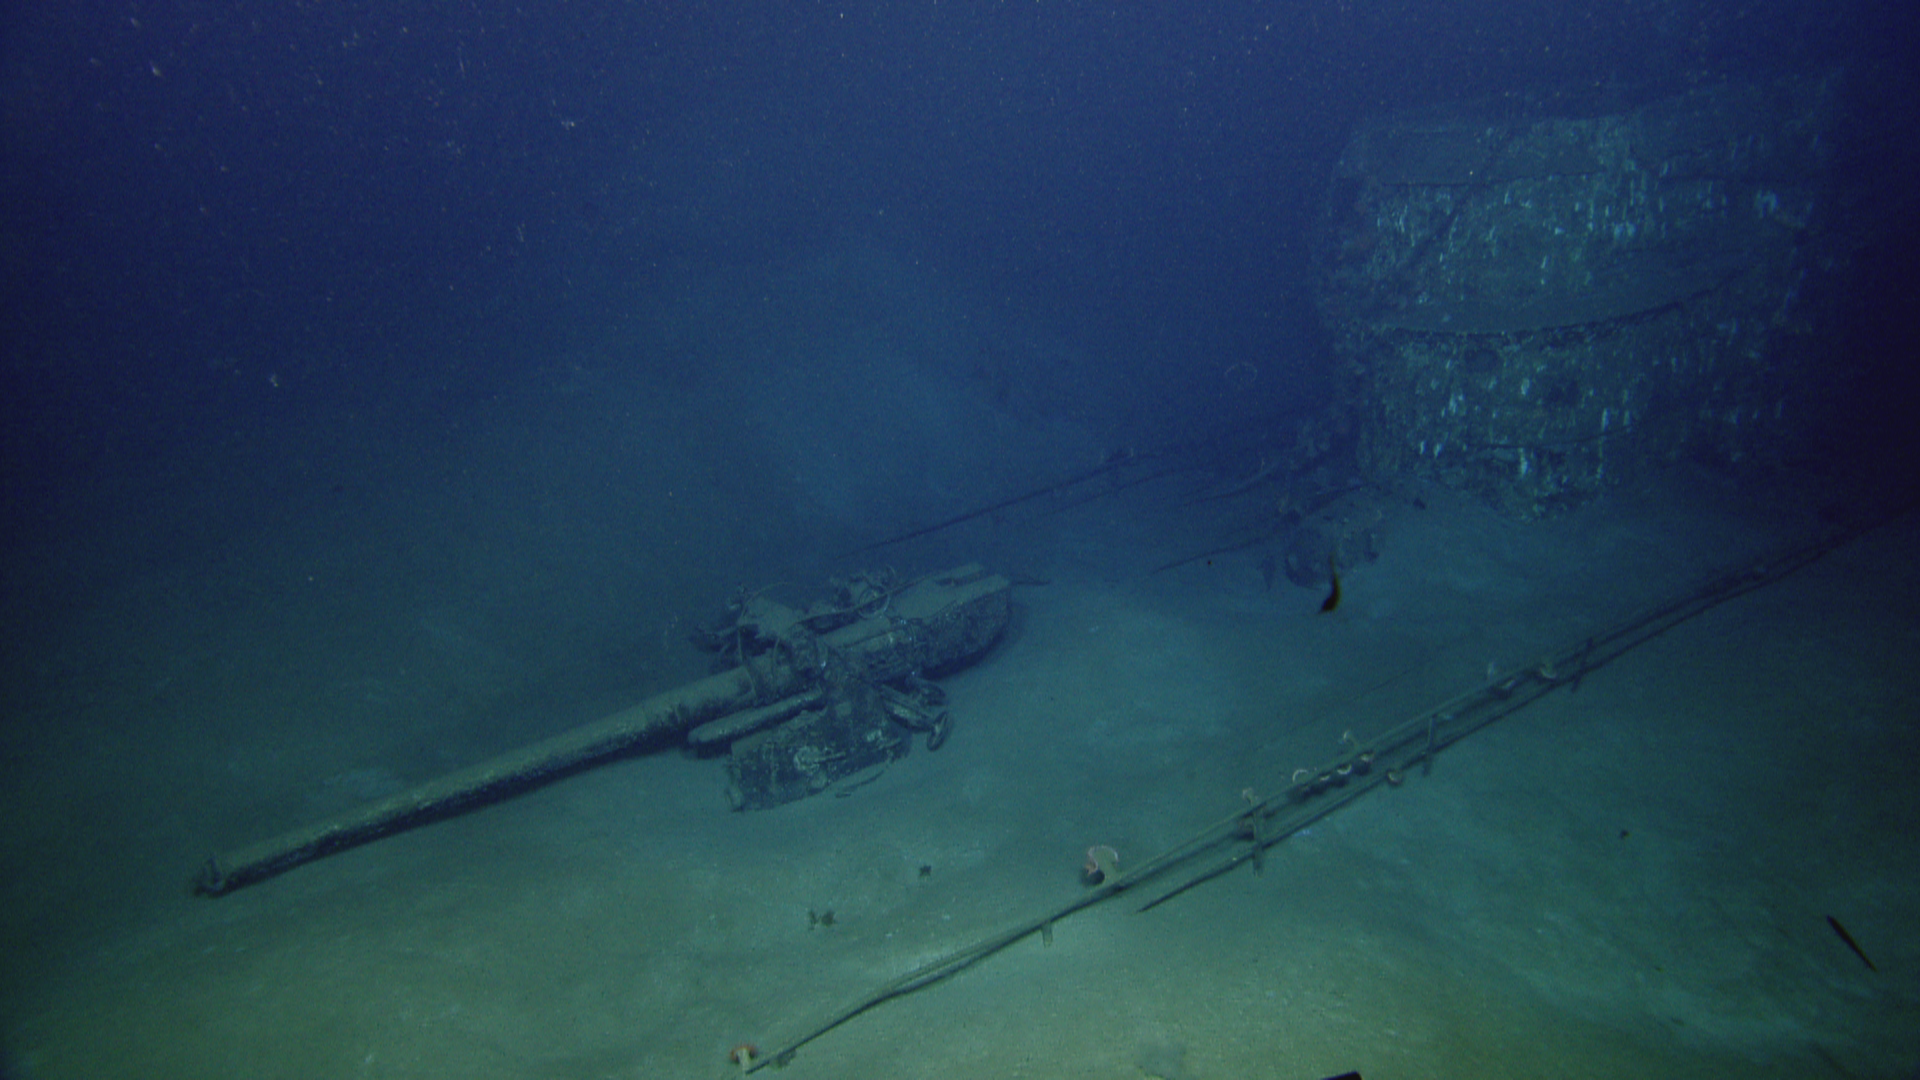 U-166 a ghostly image of the forward deck gun and conning tower